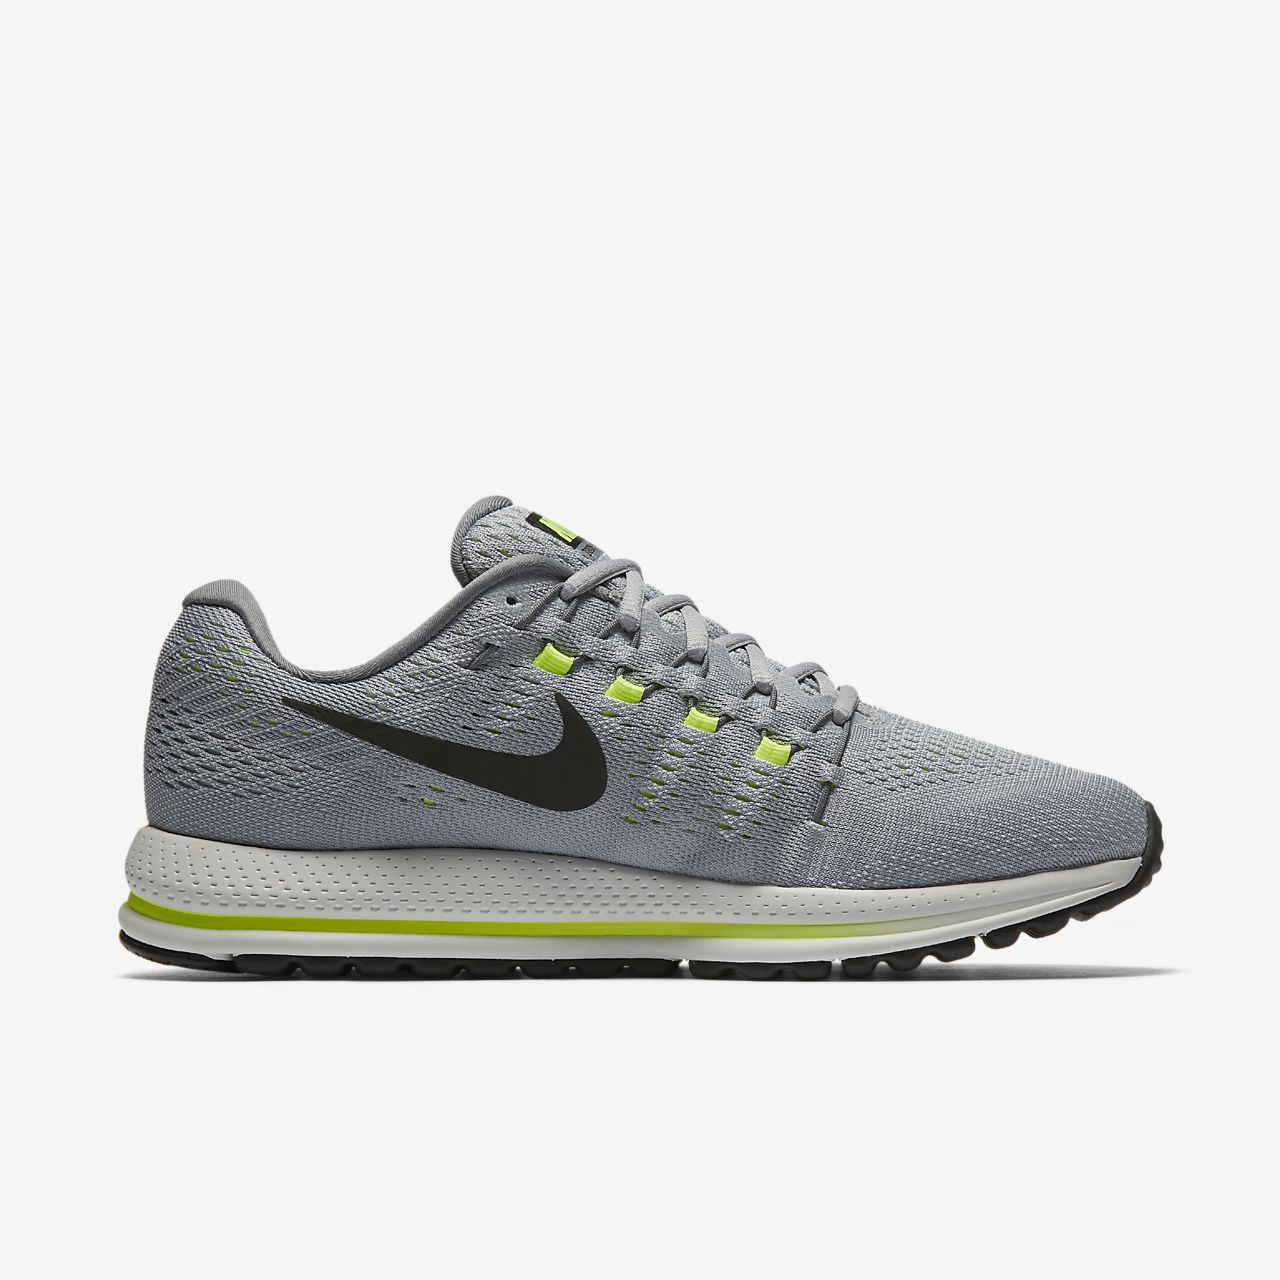 ... Nike Air Zoom Vomero 12 (Wide) Men's Running Shoe